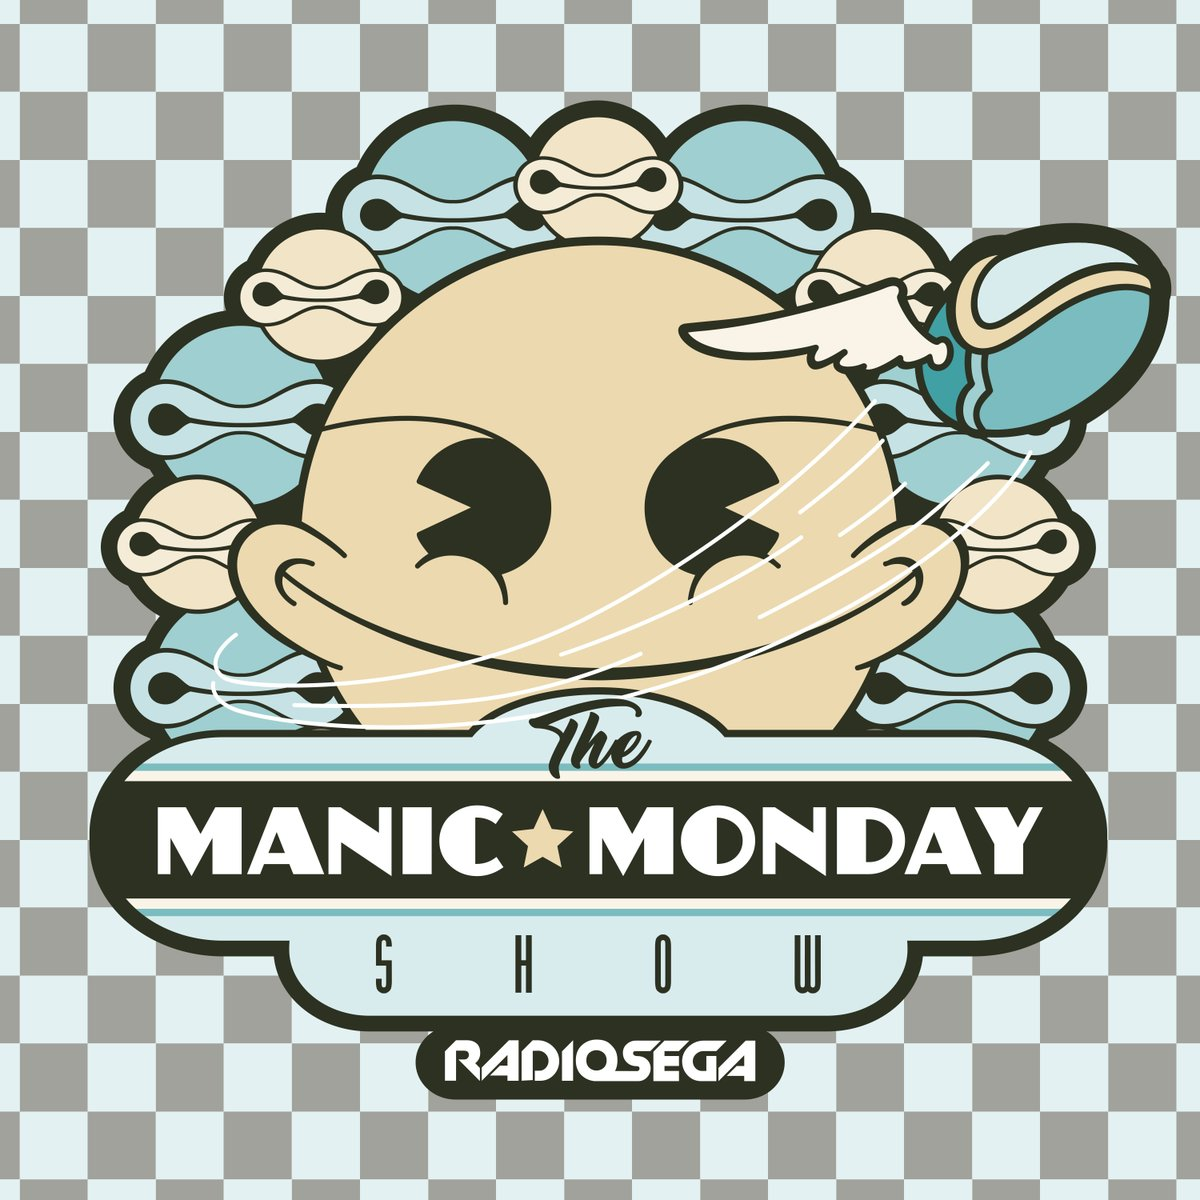 NOW LiVE: The Manic Monday Show - Quarantine Edition  Tune in: https://t.co/3U9JAh2rsf  Chat: https://t.co/UQxTTTwoca  #RSManicMonday #RadioSEGALiVE https://t.co/2YGdNZ4vsT